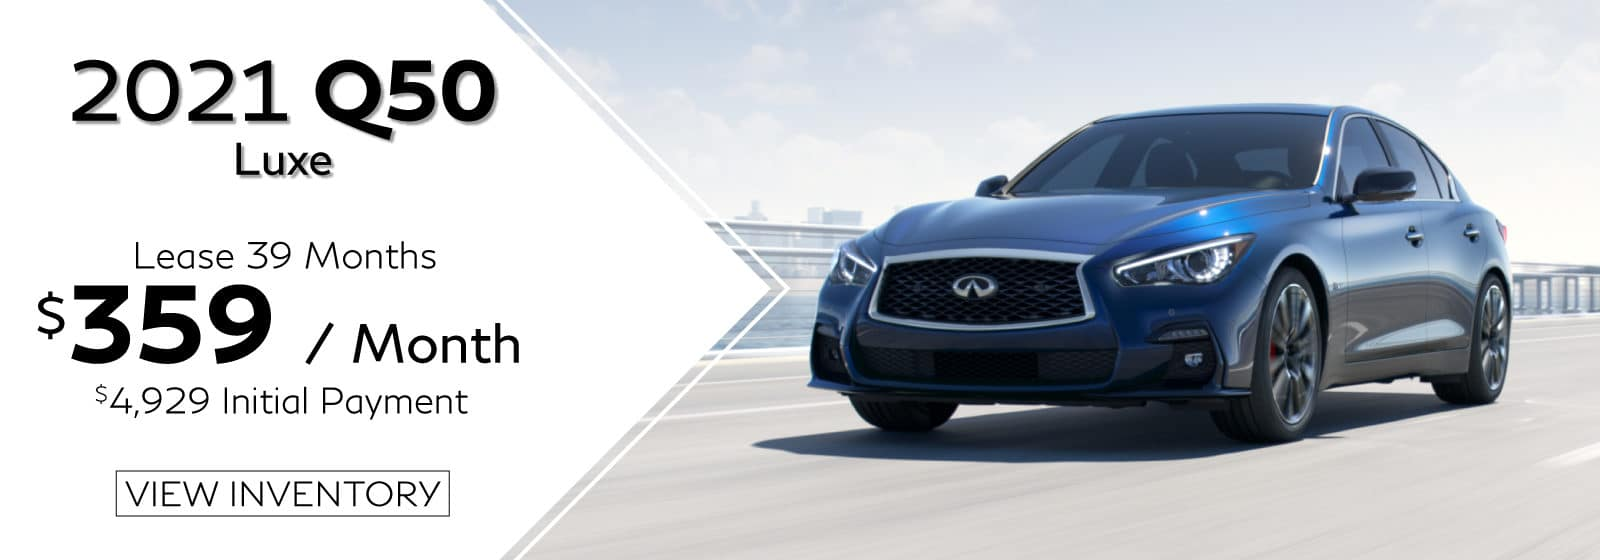 VIN JN1EV7BP0MM700743. Well-qualified lessees lease a new 2021 Q50 LUXE in retailer stock for $359/Month for 39 months. $4,929 initial payment excludes taxes, title, and license. $4,929 due at lease signing (includes down payment). Offer valid only when financed through INFINITI Financial Services. Subject to residency restrictions. $42,725 MSRP includes destination and handling charge. Net capitalized cost of $33,862 includes a $700 non-refundable acquisition fee. Retailer contribution may affect actual price set by retailer. Monthly payments total $14,001 at lease end, purchase for $22,644, plus purchase option fee up to $300 (except KS & WI), plus tax, or pay excess wear & use plus $0.25 per mile for mileage over 10,000 miles per year. Disposition fee due at lease end. No security deposit required. Must take delivery from new retailer stock. Photo for illustration purposes only. Ends 04/30/2021.